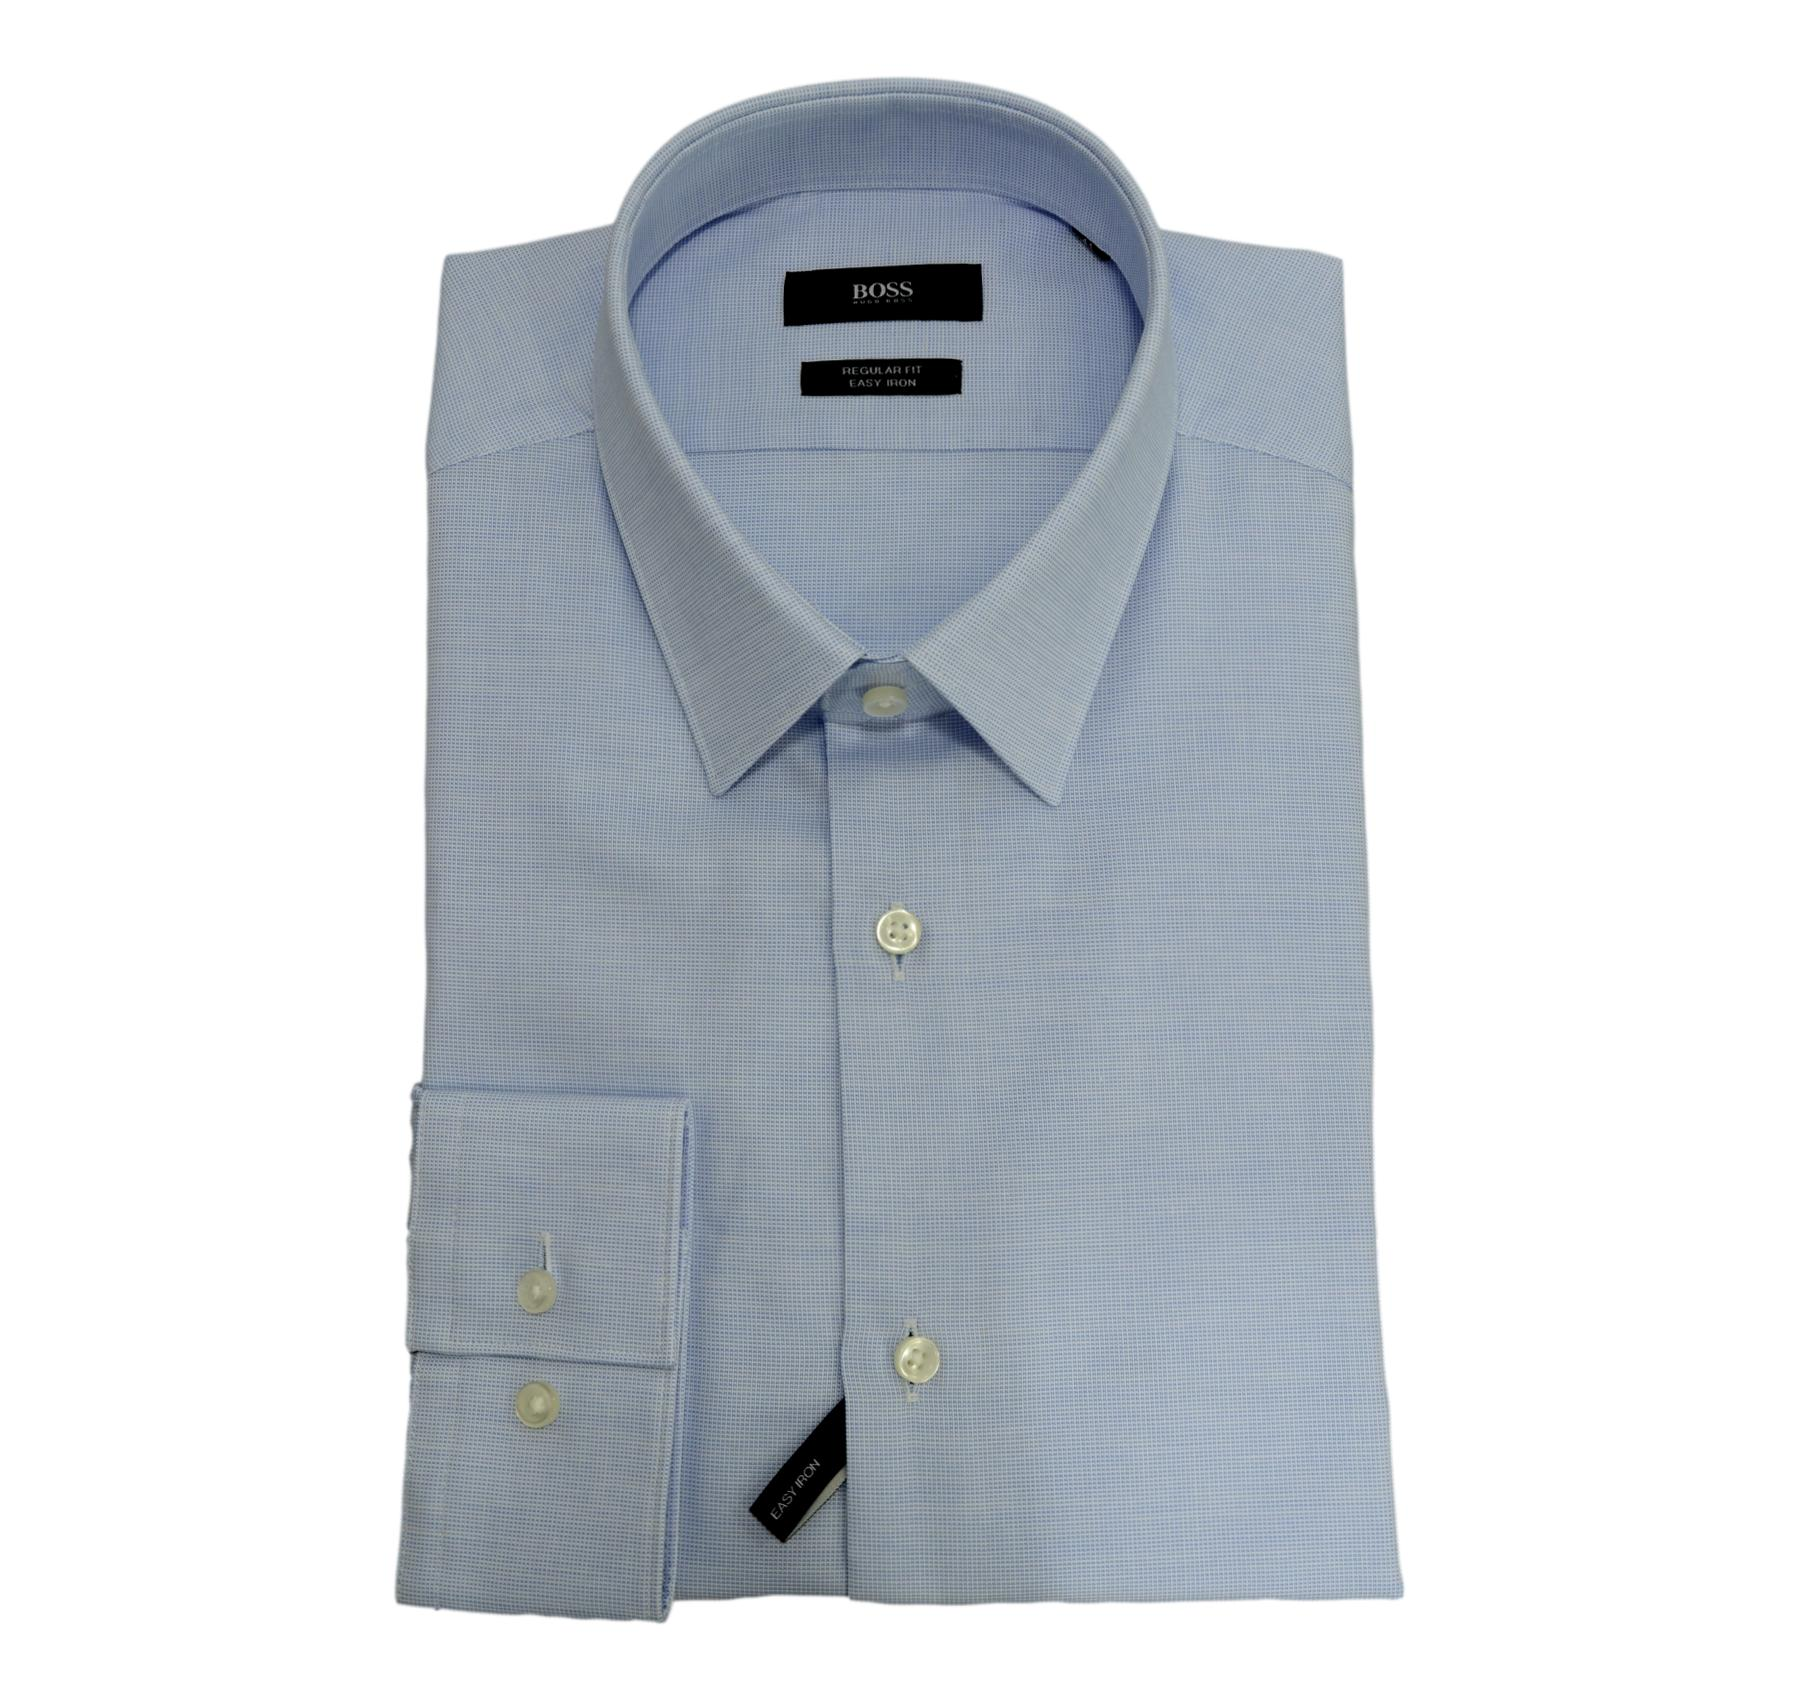 HUGO BOSS Camicia Regular Fit Cotone Facile stiro Mod. Eliott 50440439 Celeste